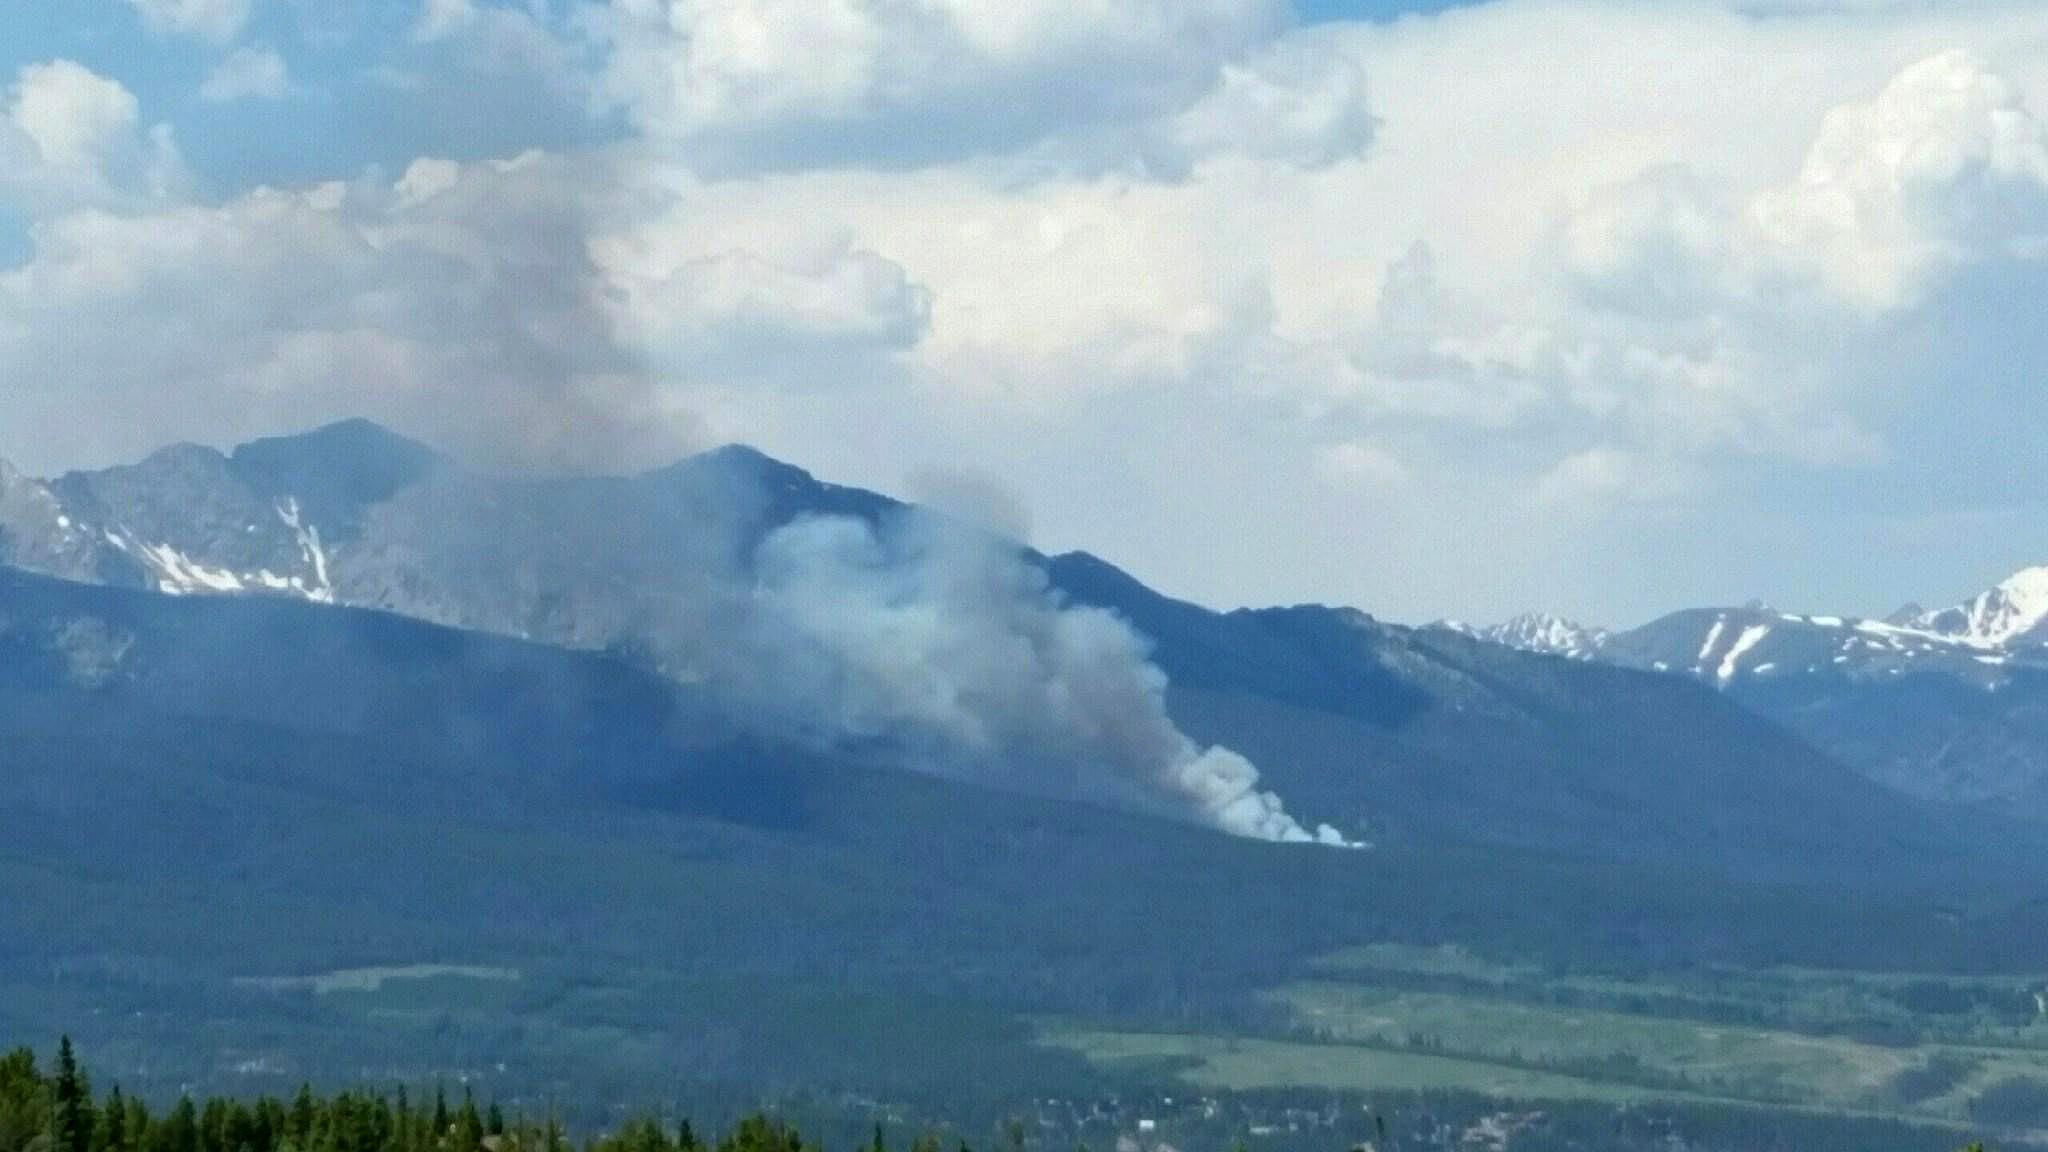 Photo: Breckenridge Wildfire Seen From Town Looking North June 5 (InciWeb)